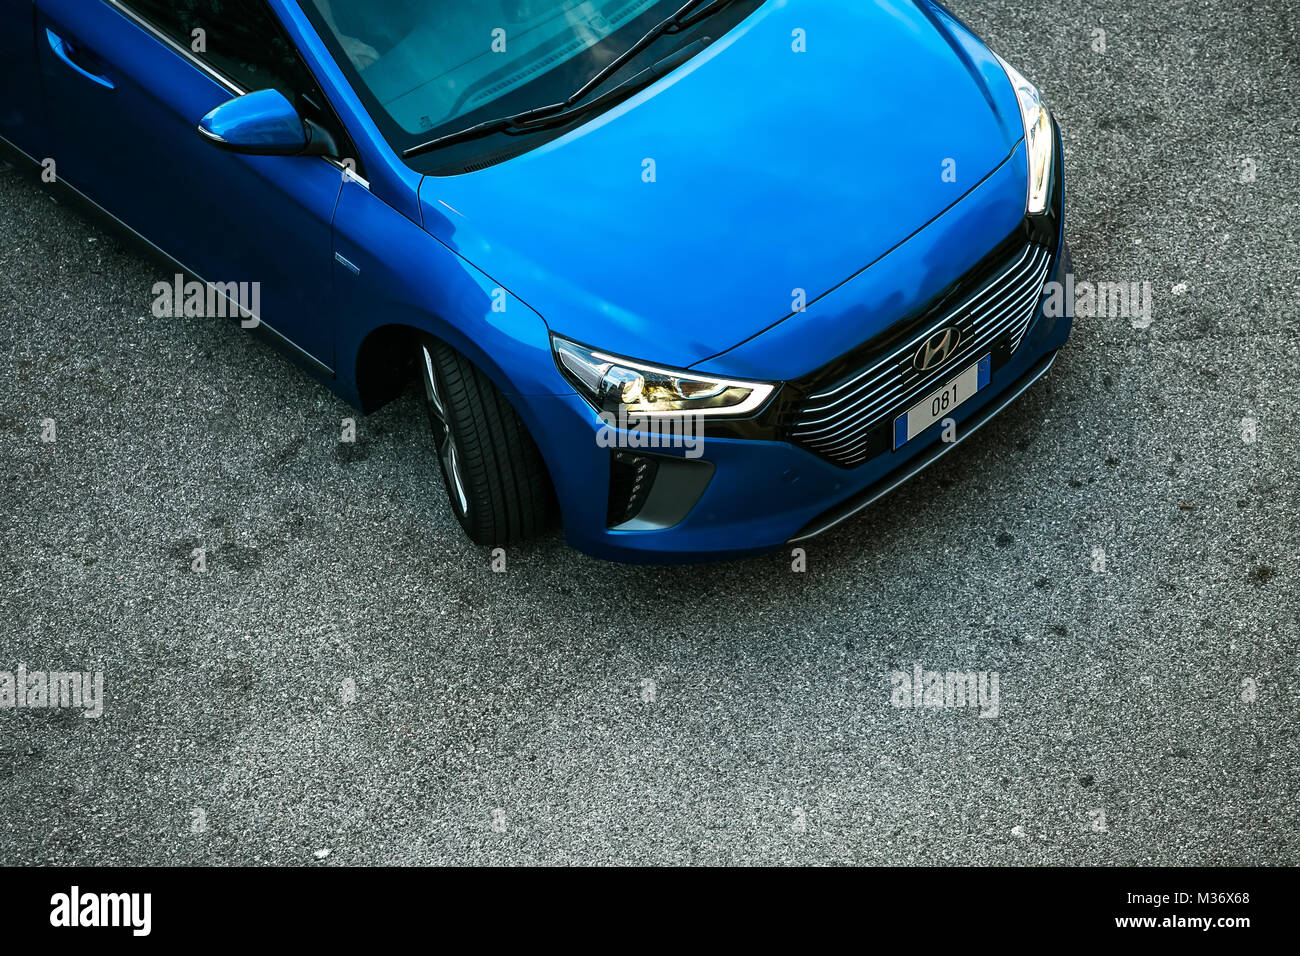 Trieste, Italy - August 2, 2017: The Hyundai Ioniq is a Compact five-door hatchback manufactured and marketed by - Stock Image